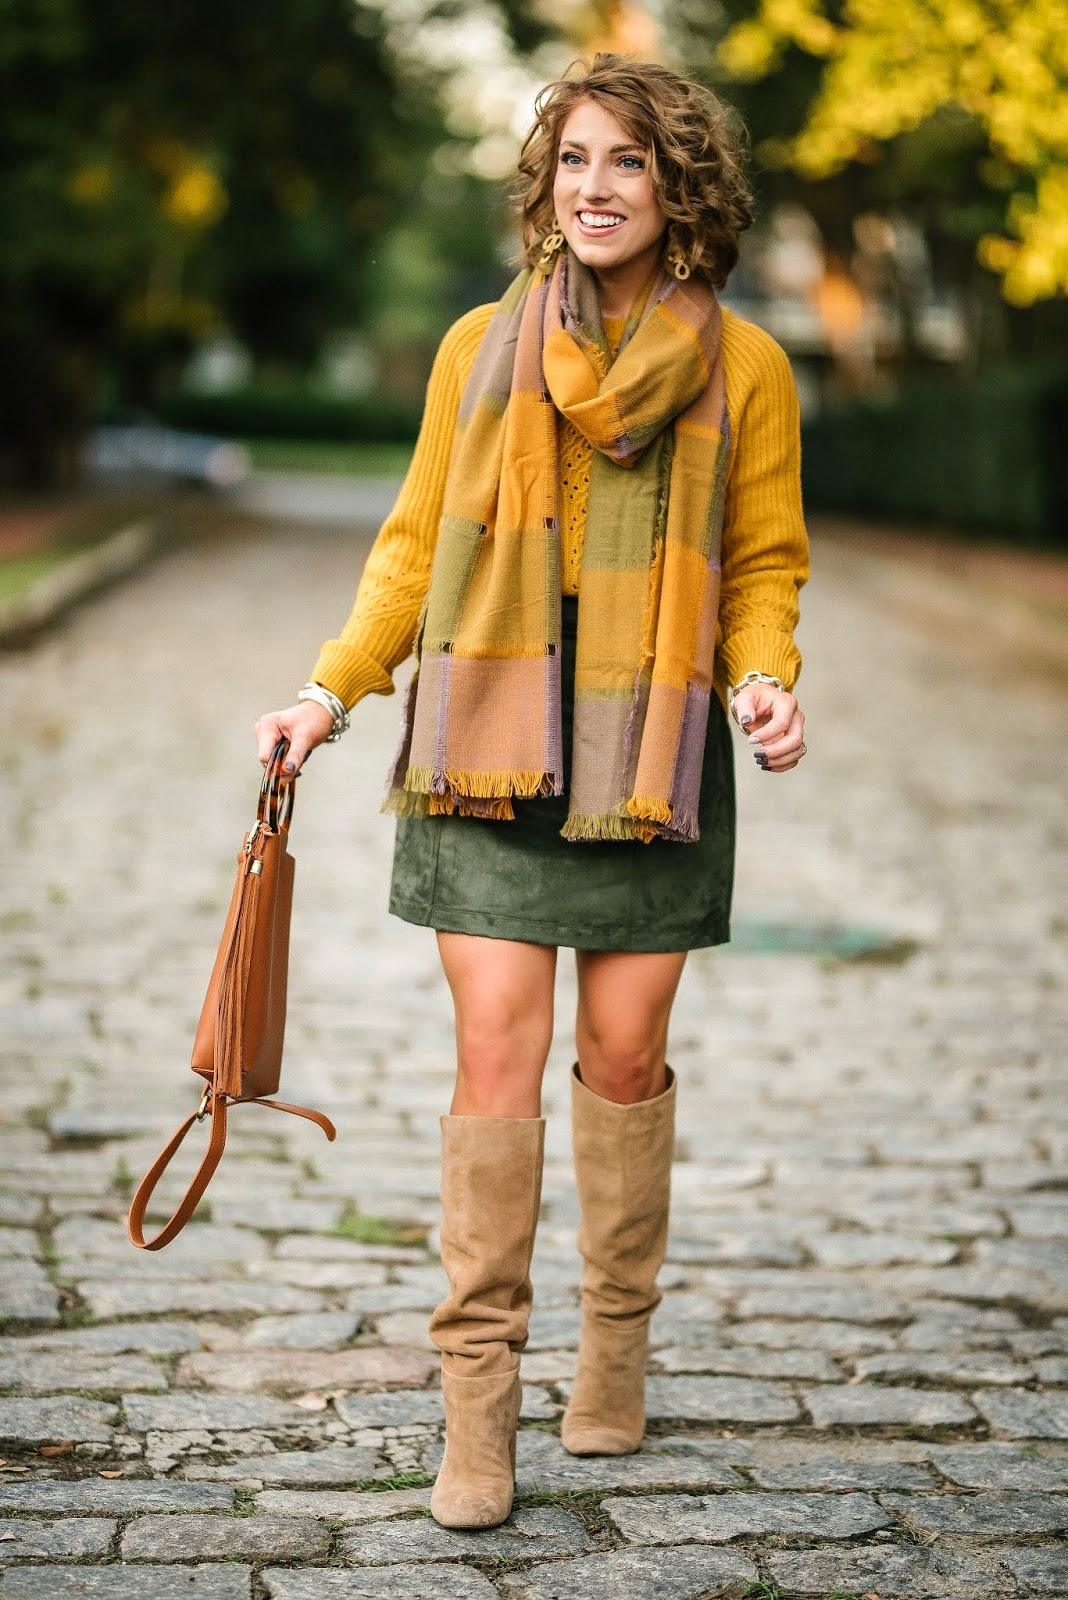 Mustard Yellow & Olive Green for Fall (Skirt, Sweater, Scarf and Bag each under $100) - Something Delightful Blog